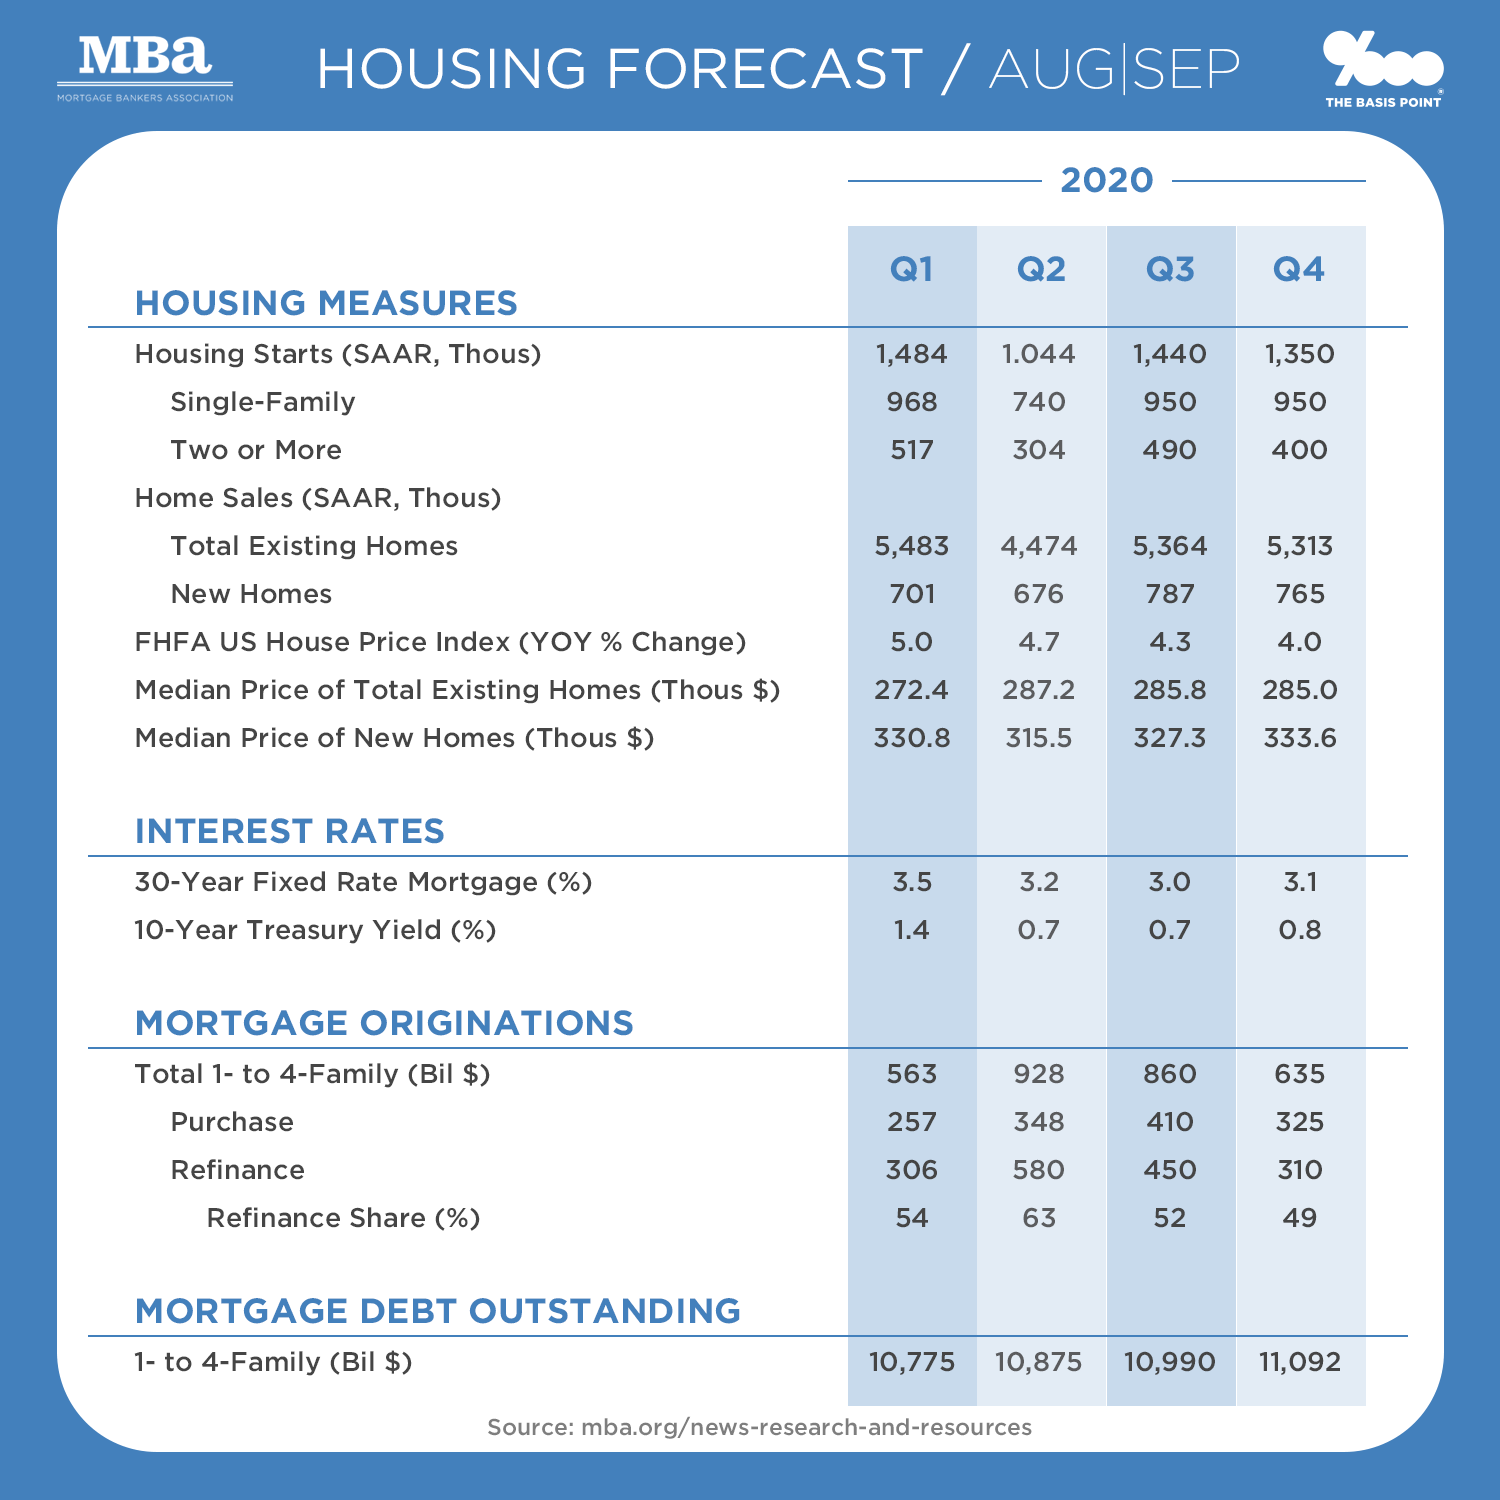 Home Prices, Mortgage Rates, Size of Mortgage Market - Outlook 2020 Q1 to Q4 - MBA, The Basis Point